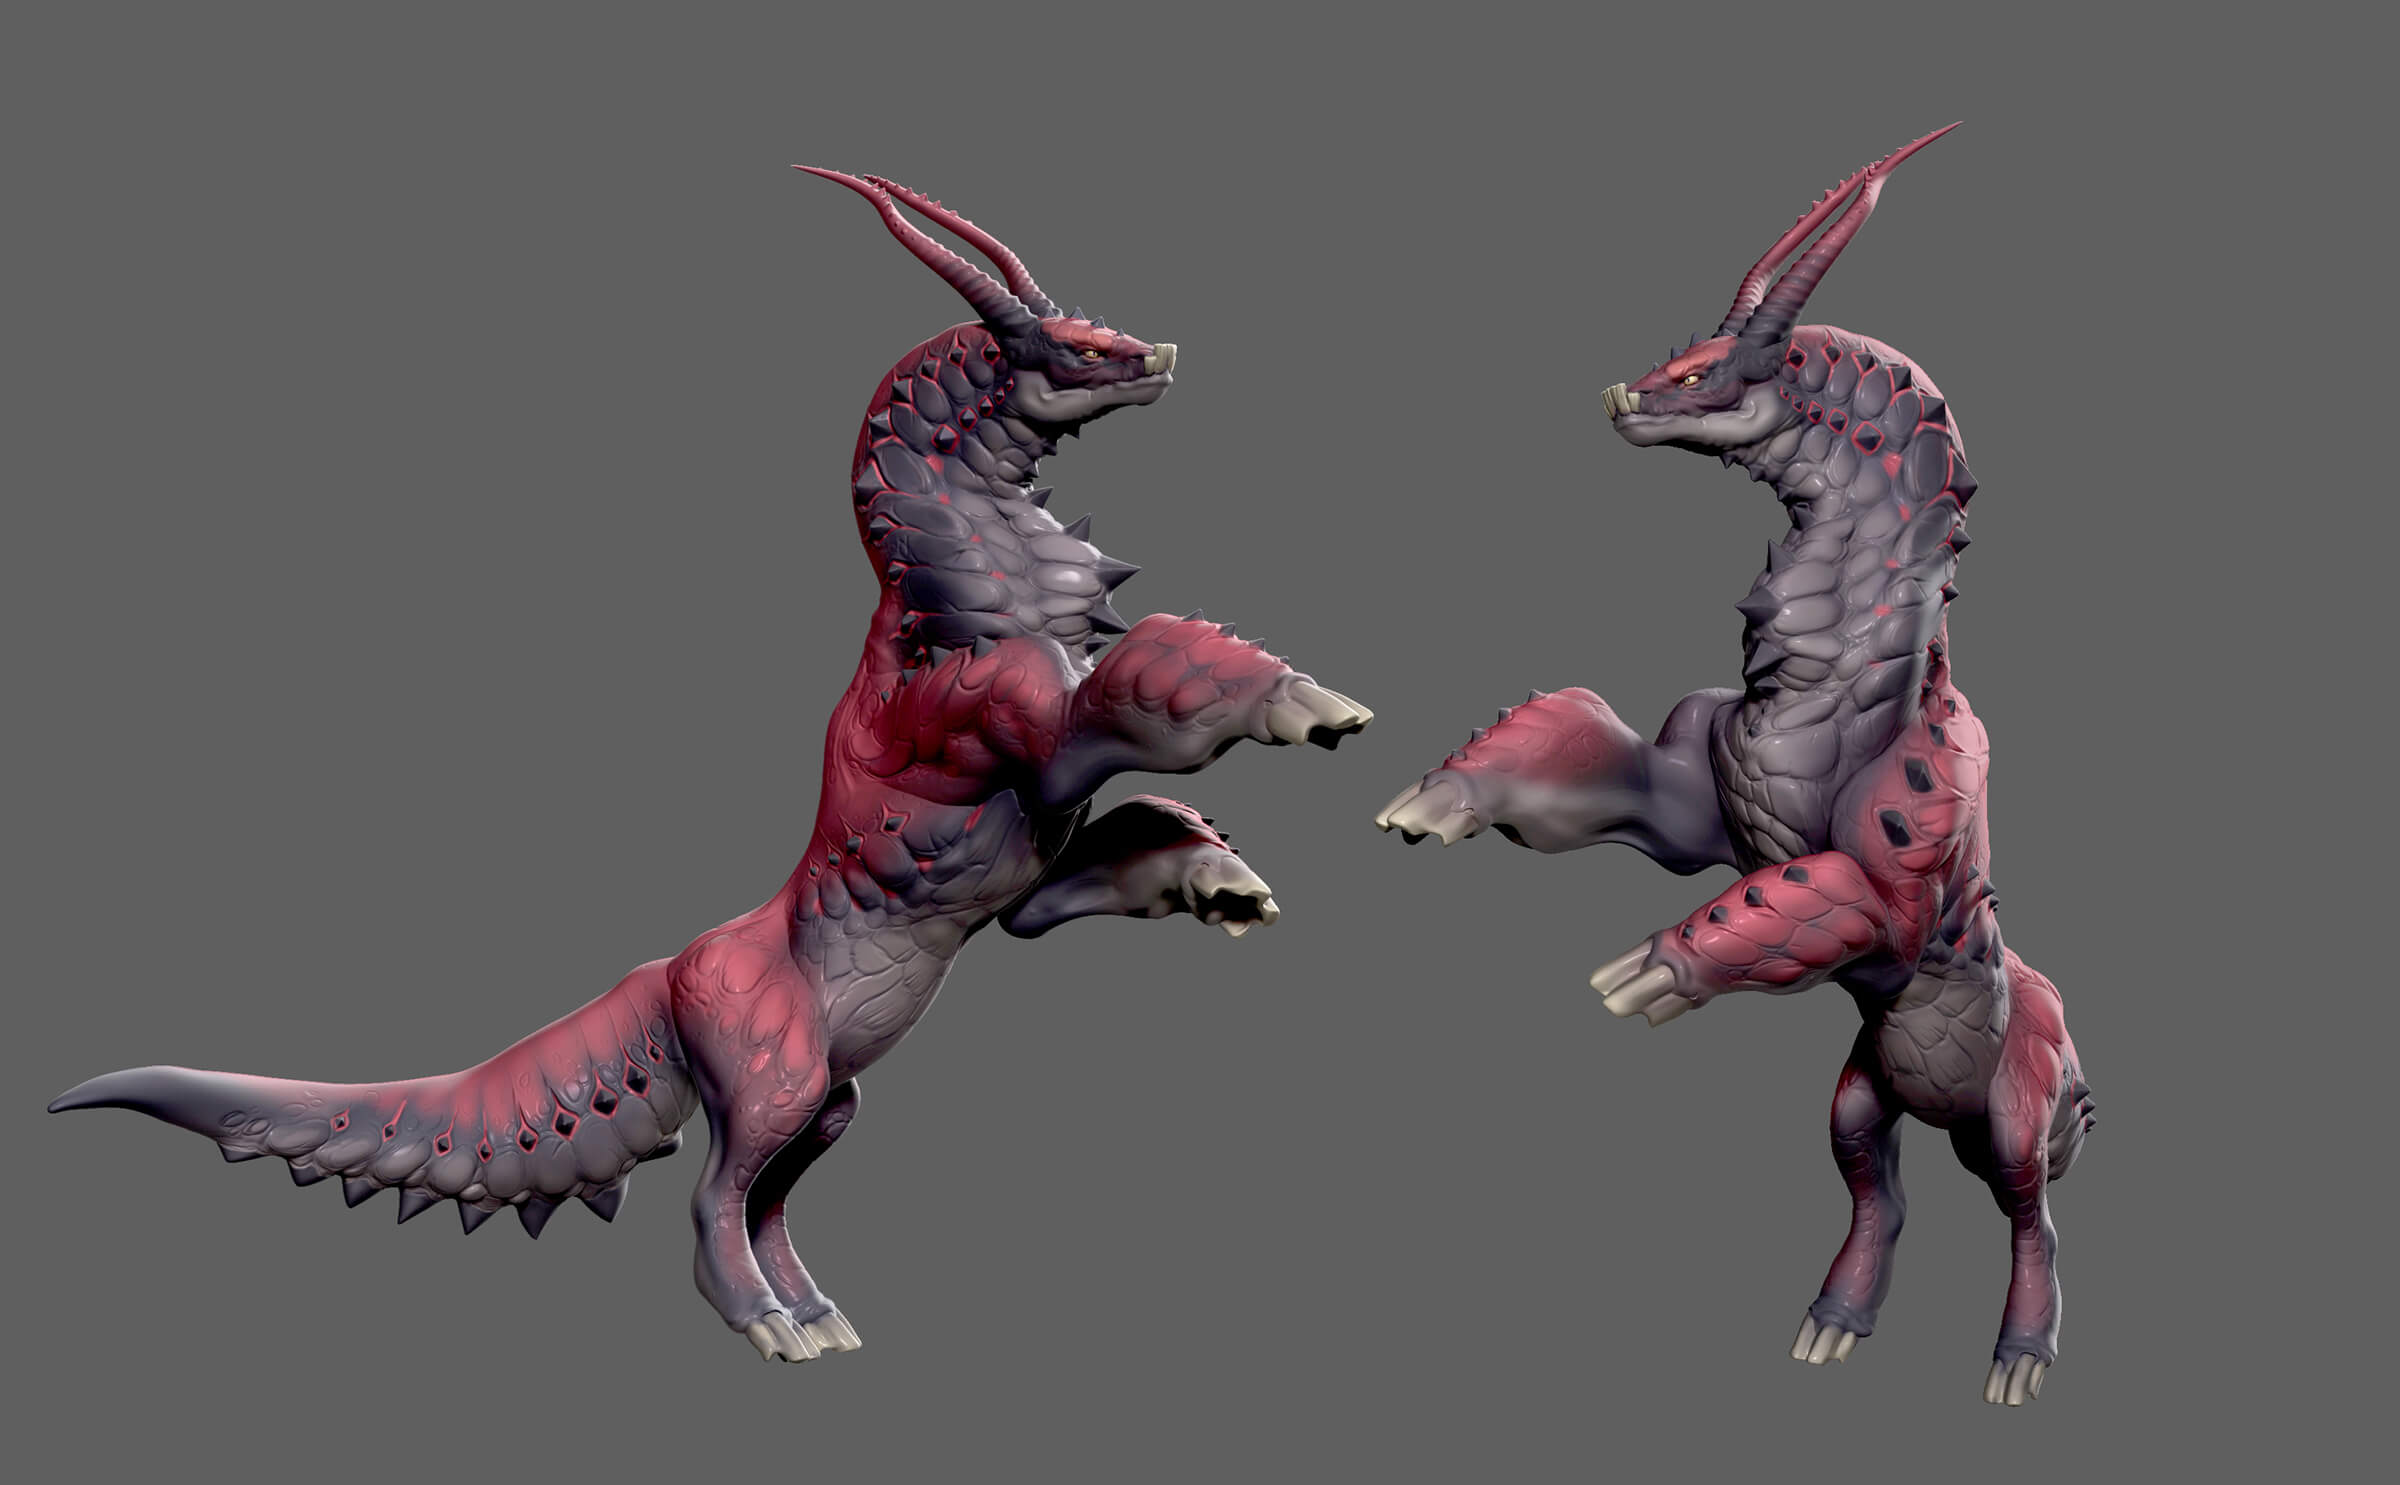 Two angles of a dragon-like creature standing on its hind legs